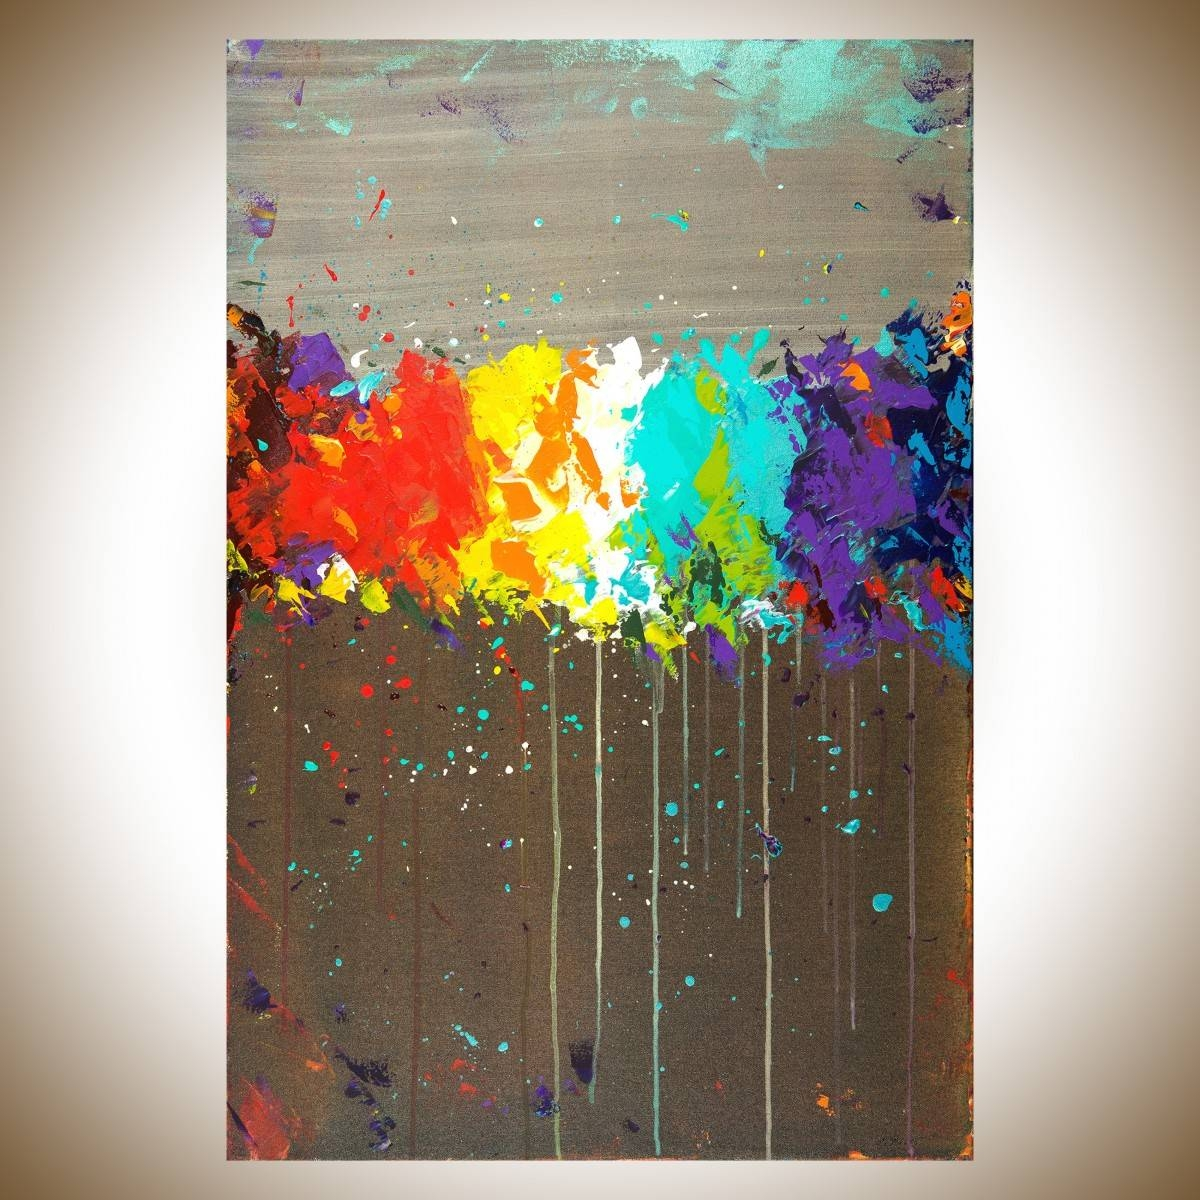 """Fireworksqiqigallery 36""""x24"""" Original Modern Abstract Wall pertaining to 2018 Colorful Abstract Wall Art"""